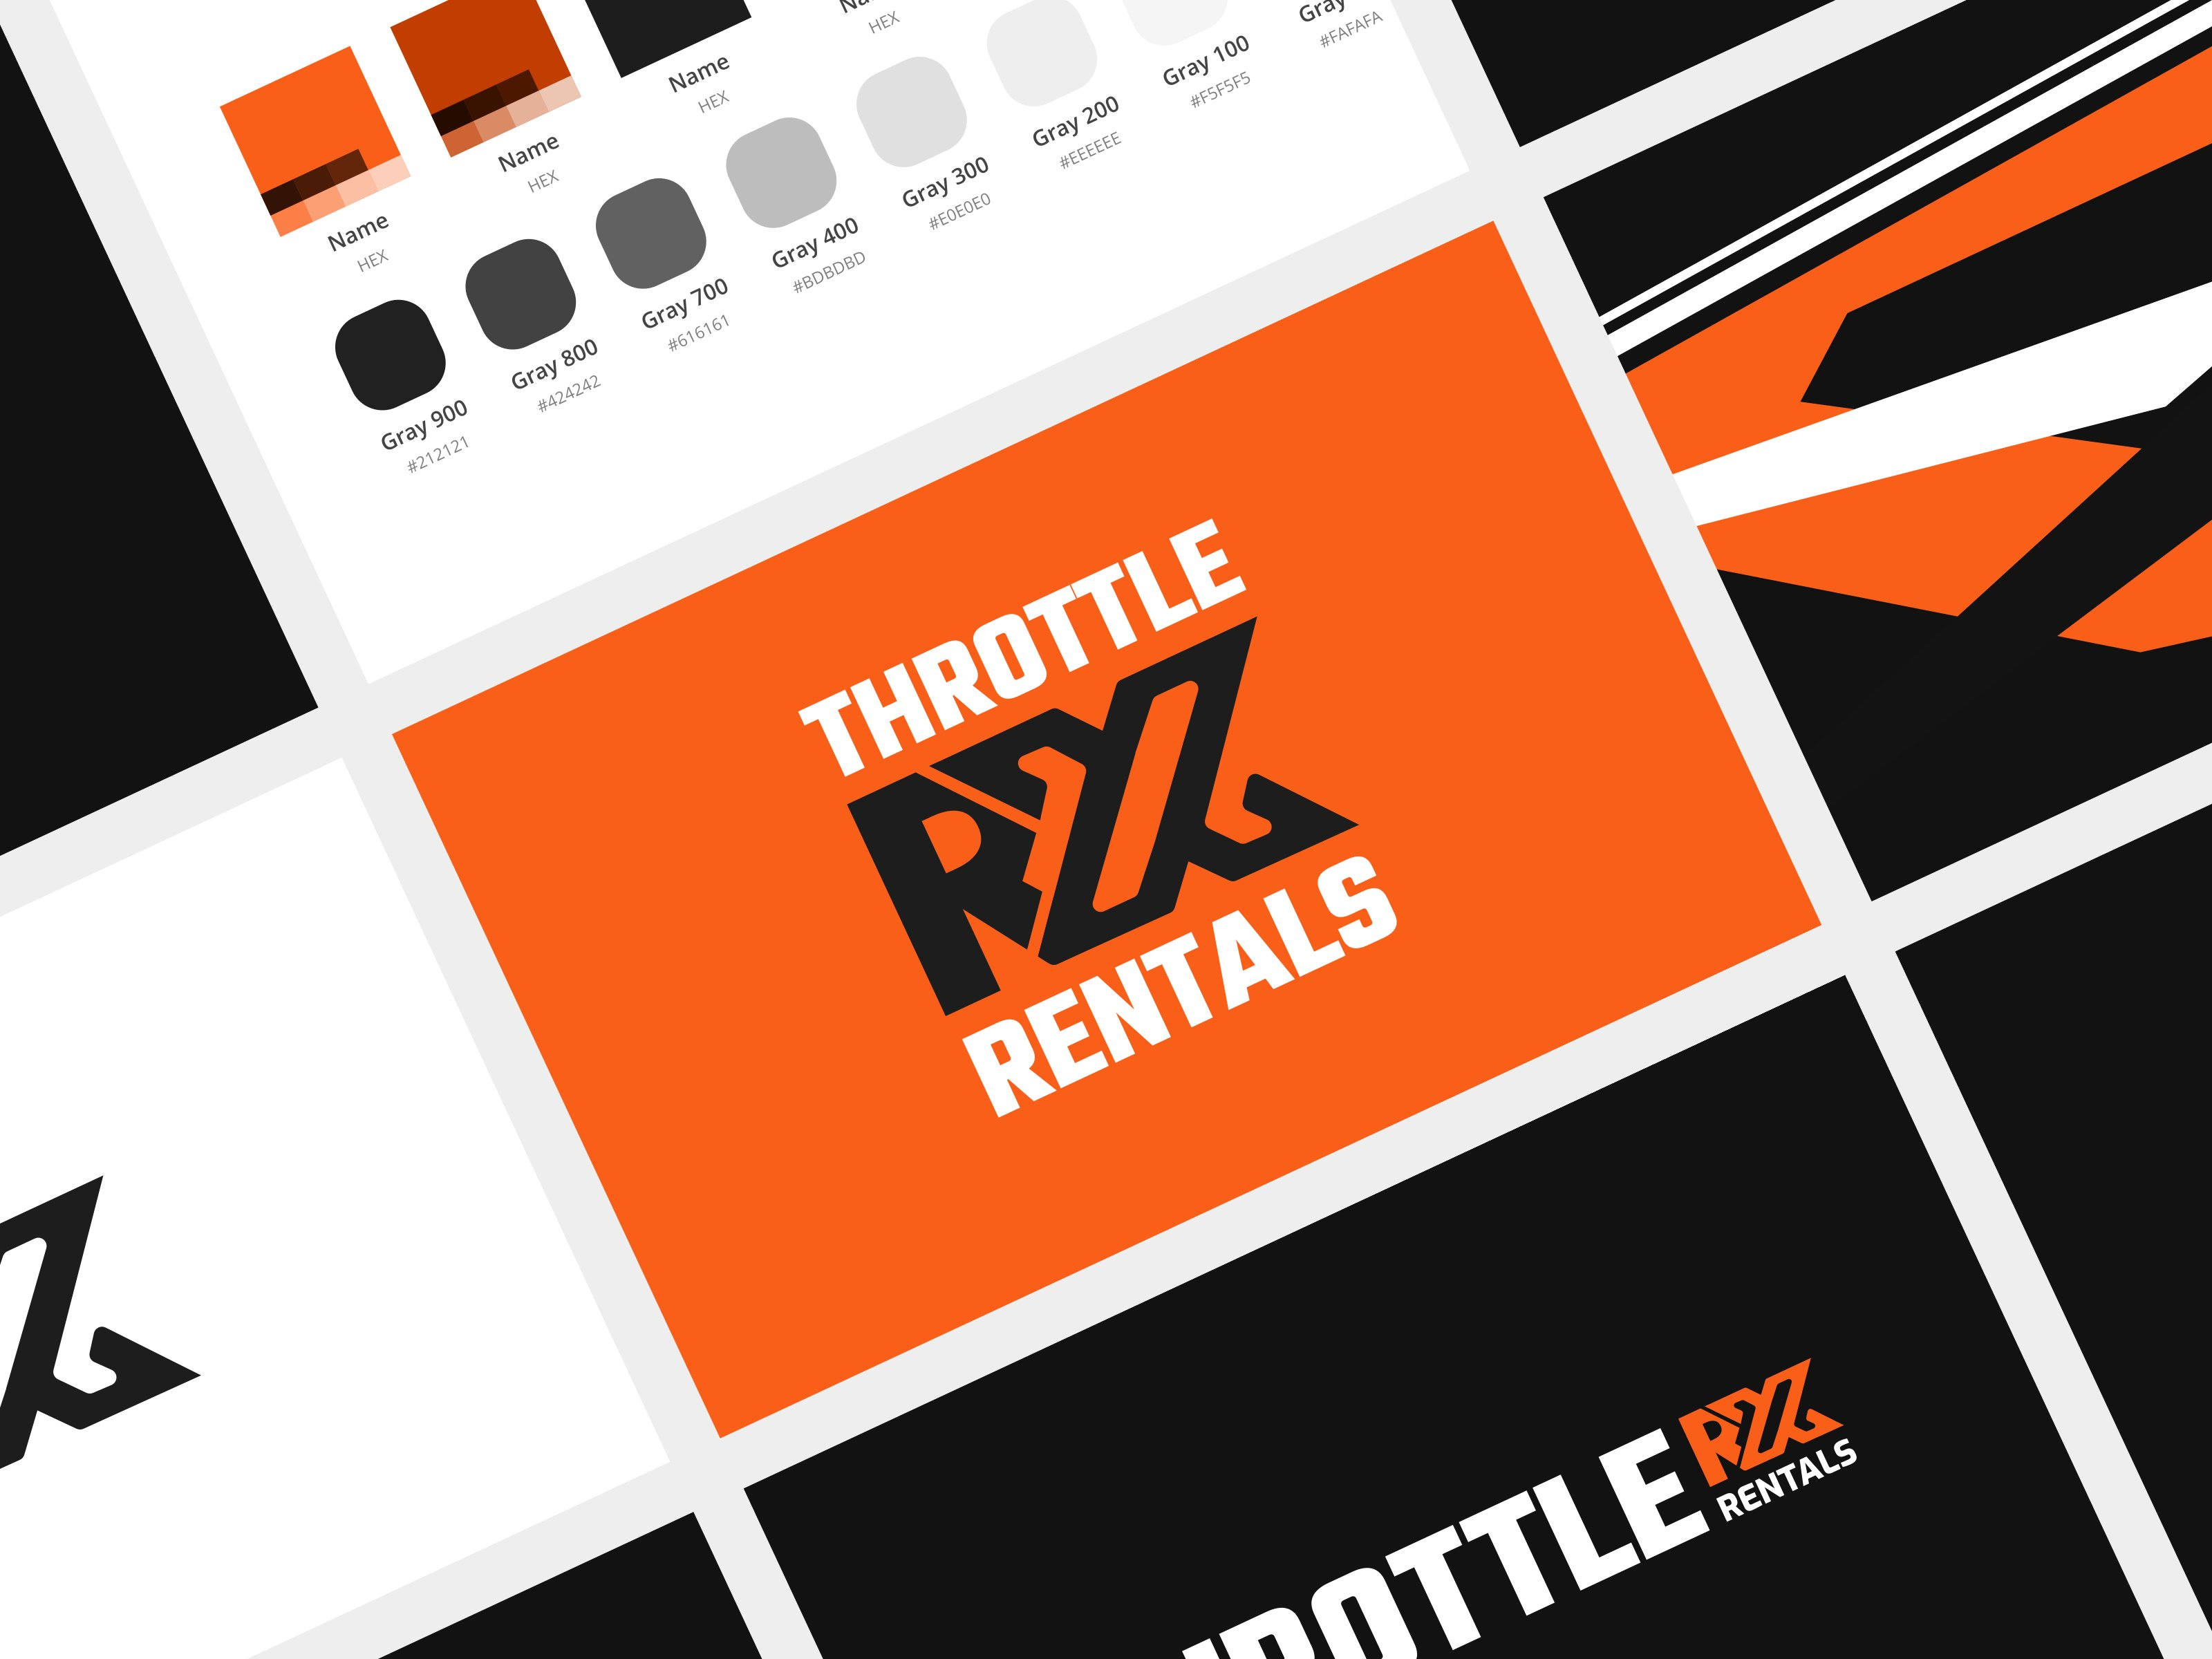 Throttle RX Rentals Branding